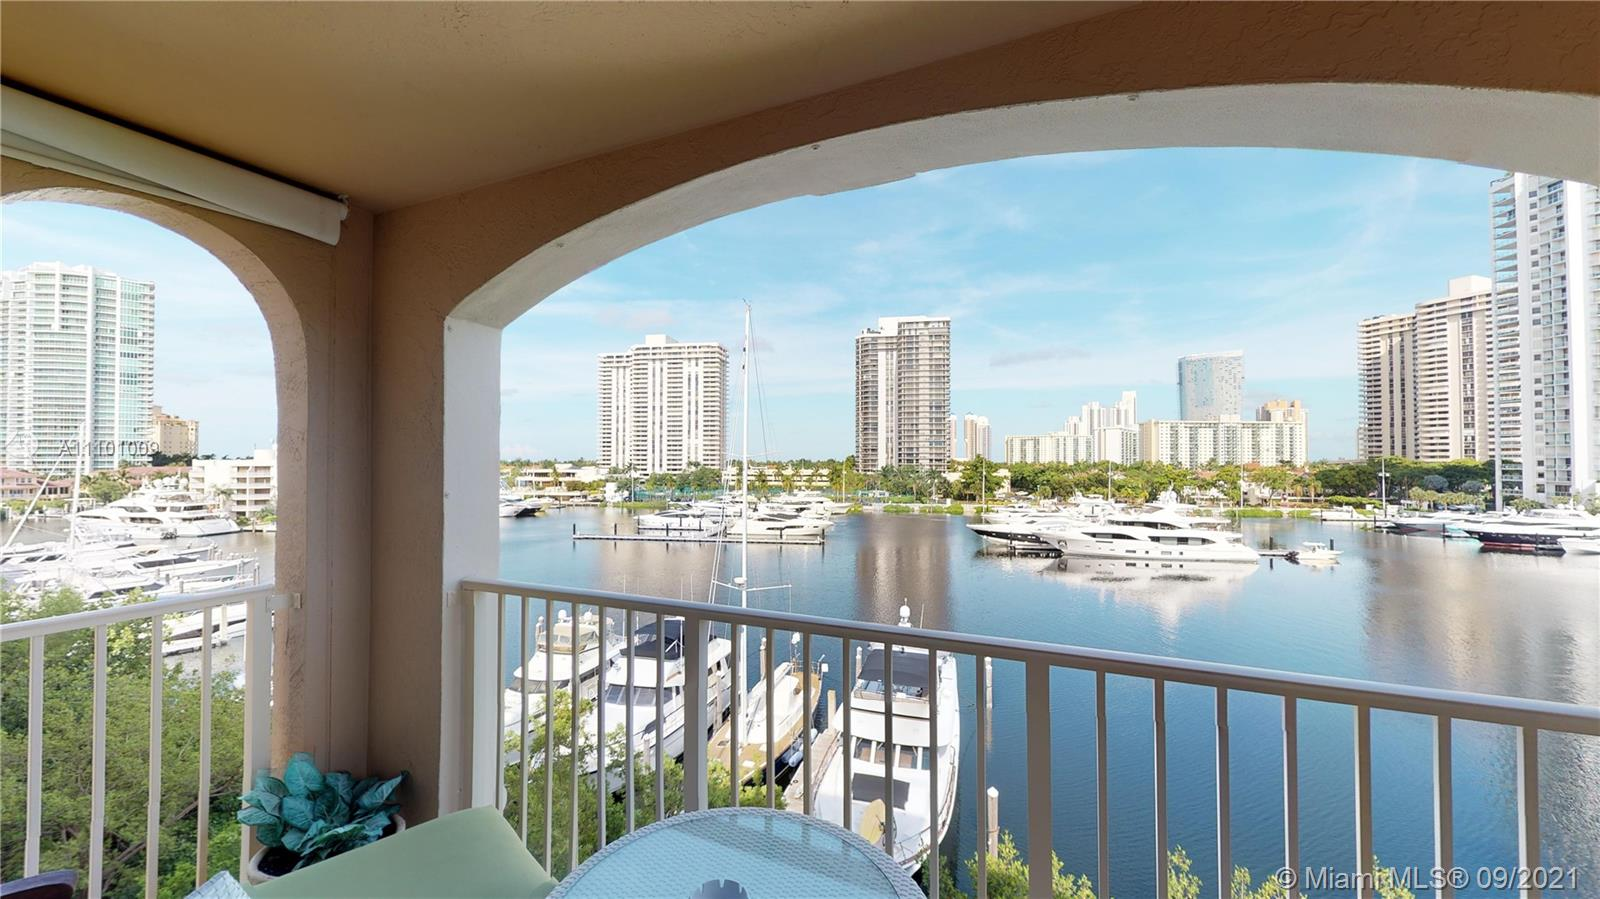 Condo For Rent at THE YACHT CLUB AT AVENTURA,The Yacht Club